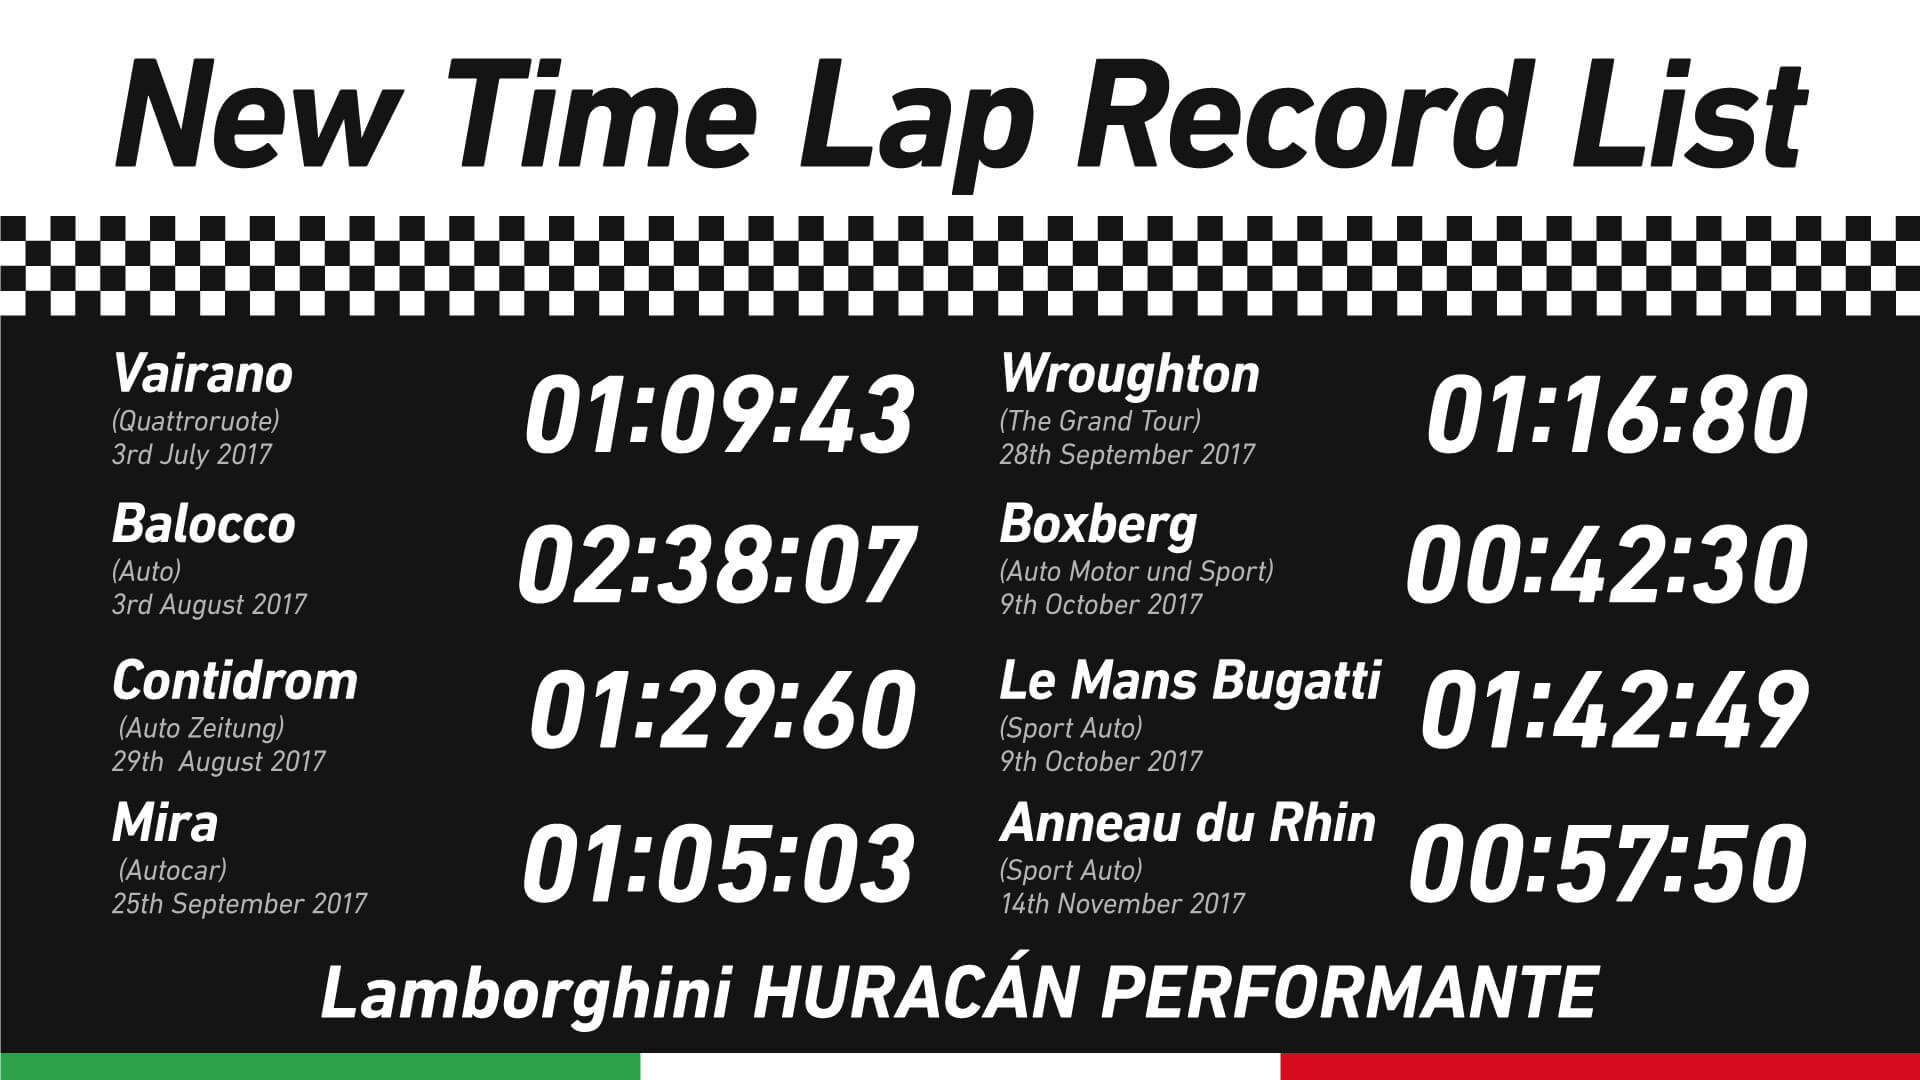 Lamborghini HURACÁN PERFORMANTE ランボルギーニ ウラカン ペルフォルマンテ (Autocar) 25th September 2017Mira01:05:0300:57:50(Sport Auto) 14th November 2017Anneau du Rhin (Auto Zeitung) 29th August 2017Contidrom01:29:6001:42:49(Sport Auto) 9th October 2017Le Mans Bugatti(Auto) 3rd August 2017Balocco02:38:0700:42:30(Auto Motor und Sport) 9th October 2017Boxberg(Quattroruote) 3rd July 2017Vairano01:09:4301:16:80(The Grand Tour) 28th September 2017WroughtonNew Time Lap Record List